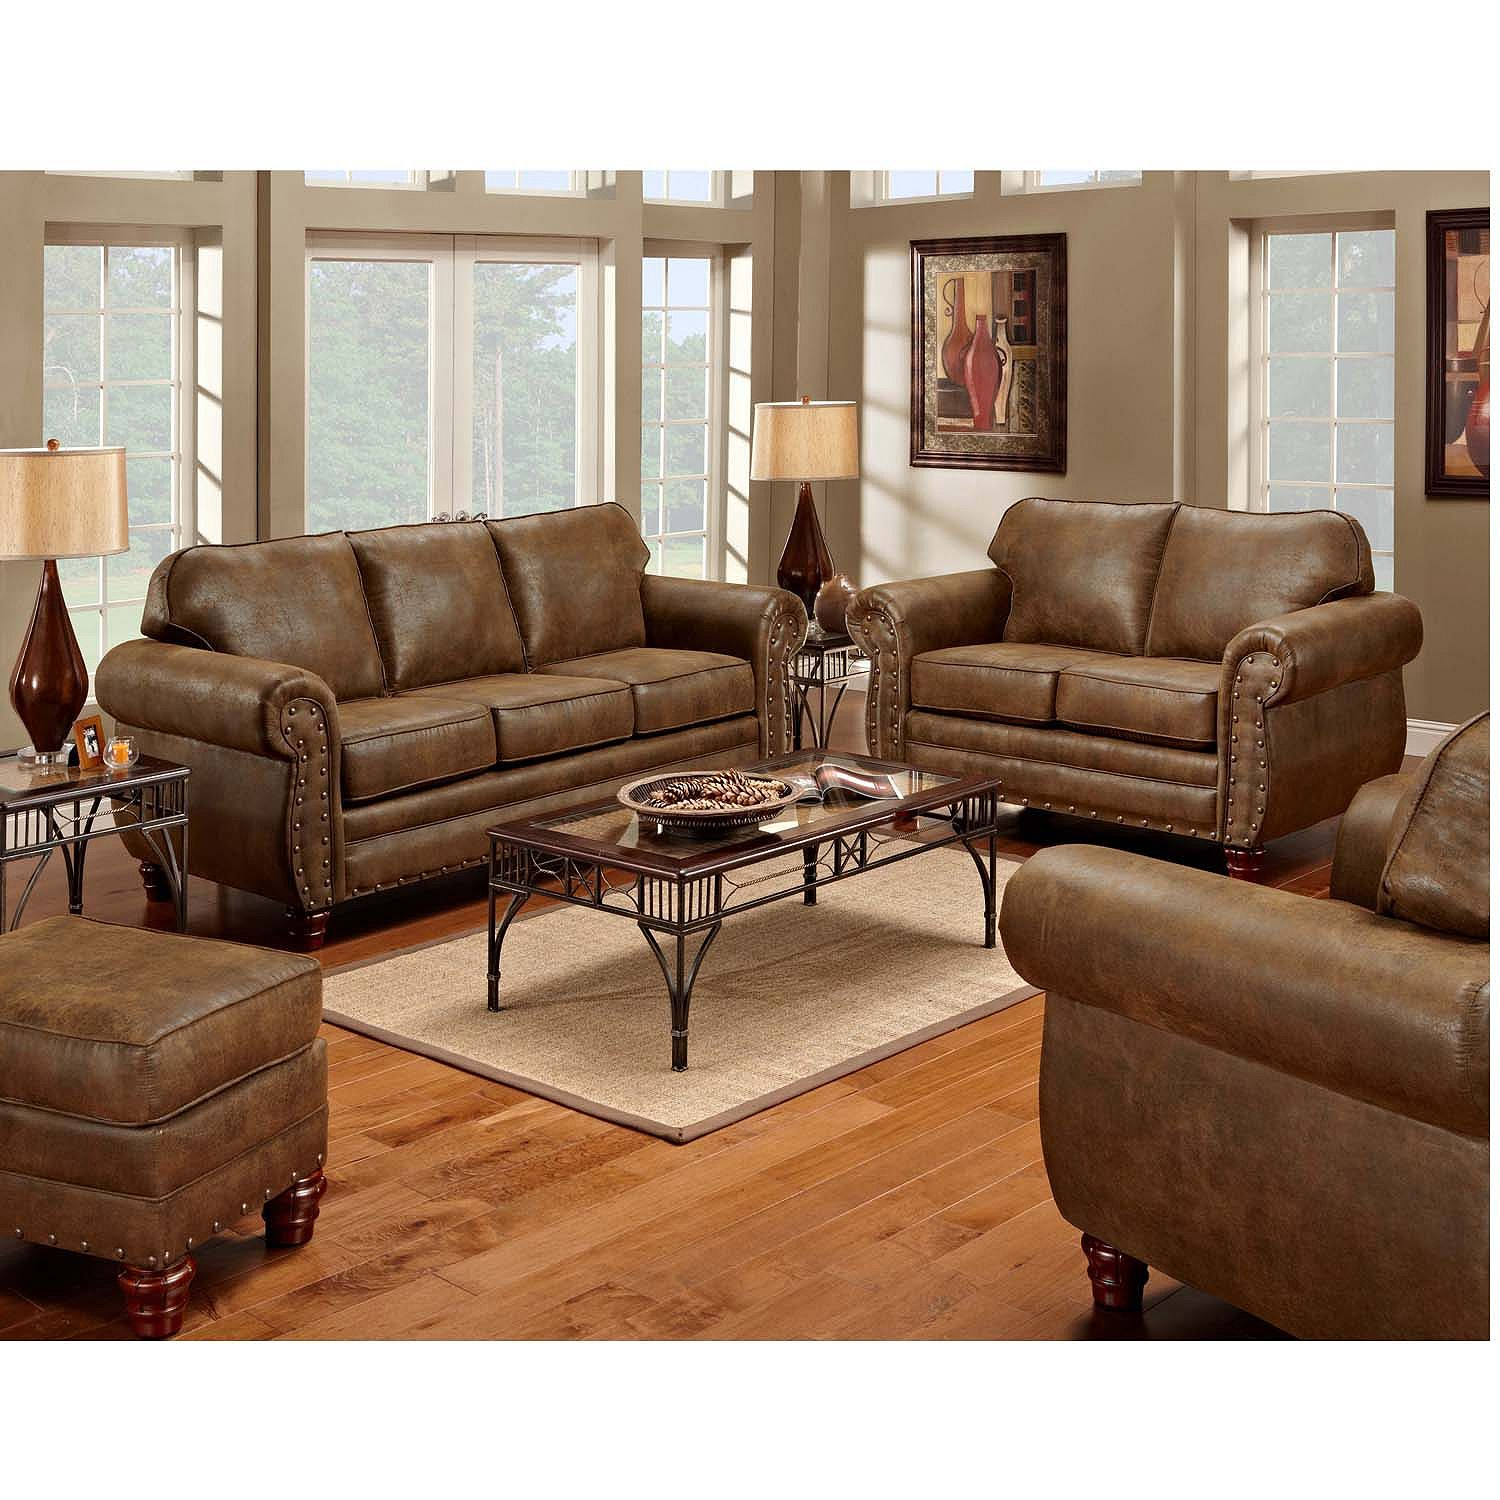 Top comfortable chairs for living room homesfeed